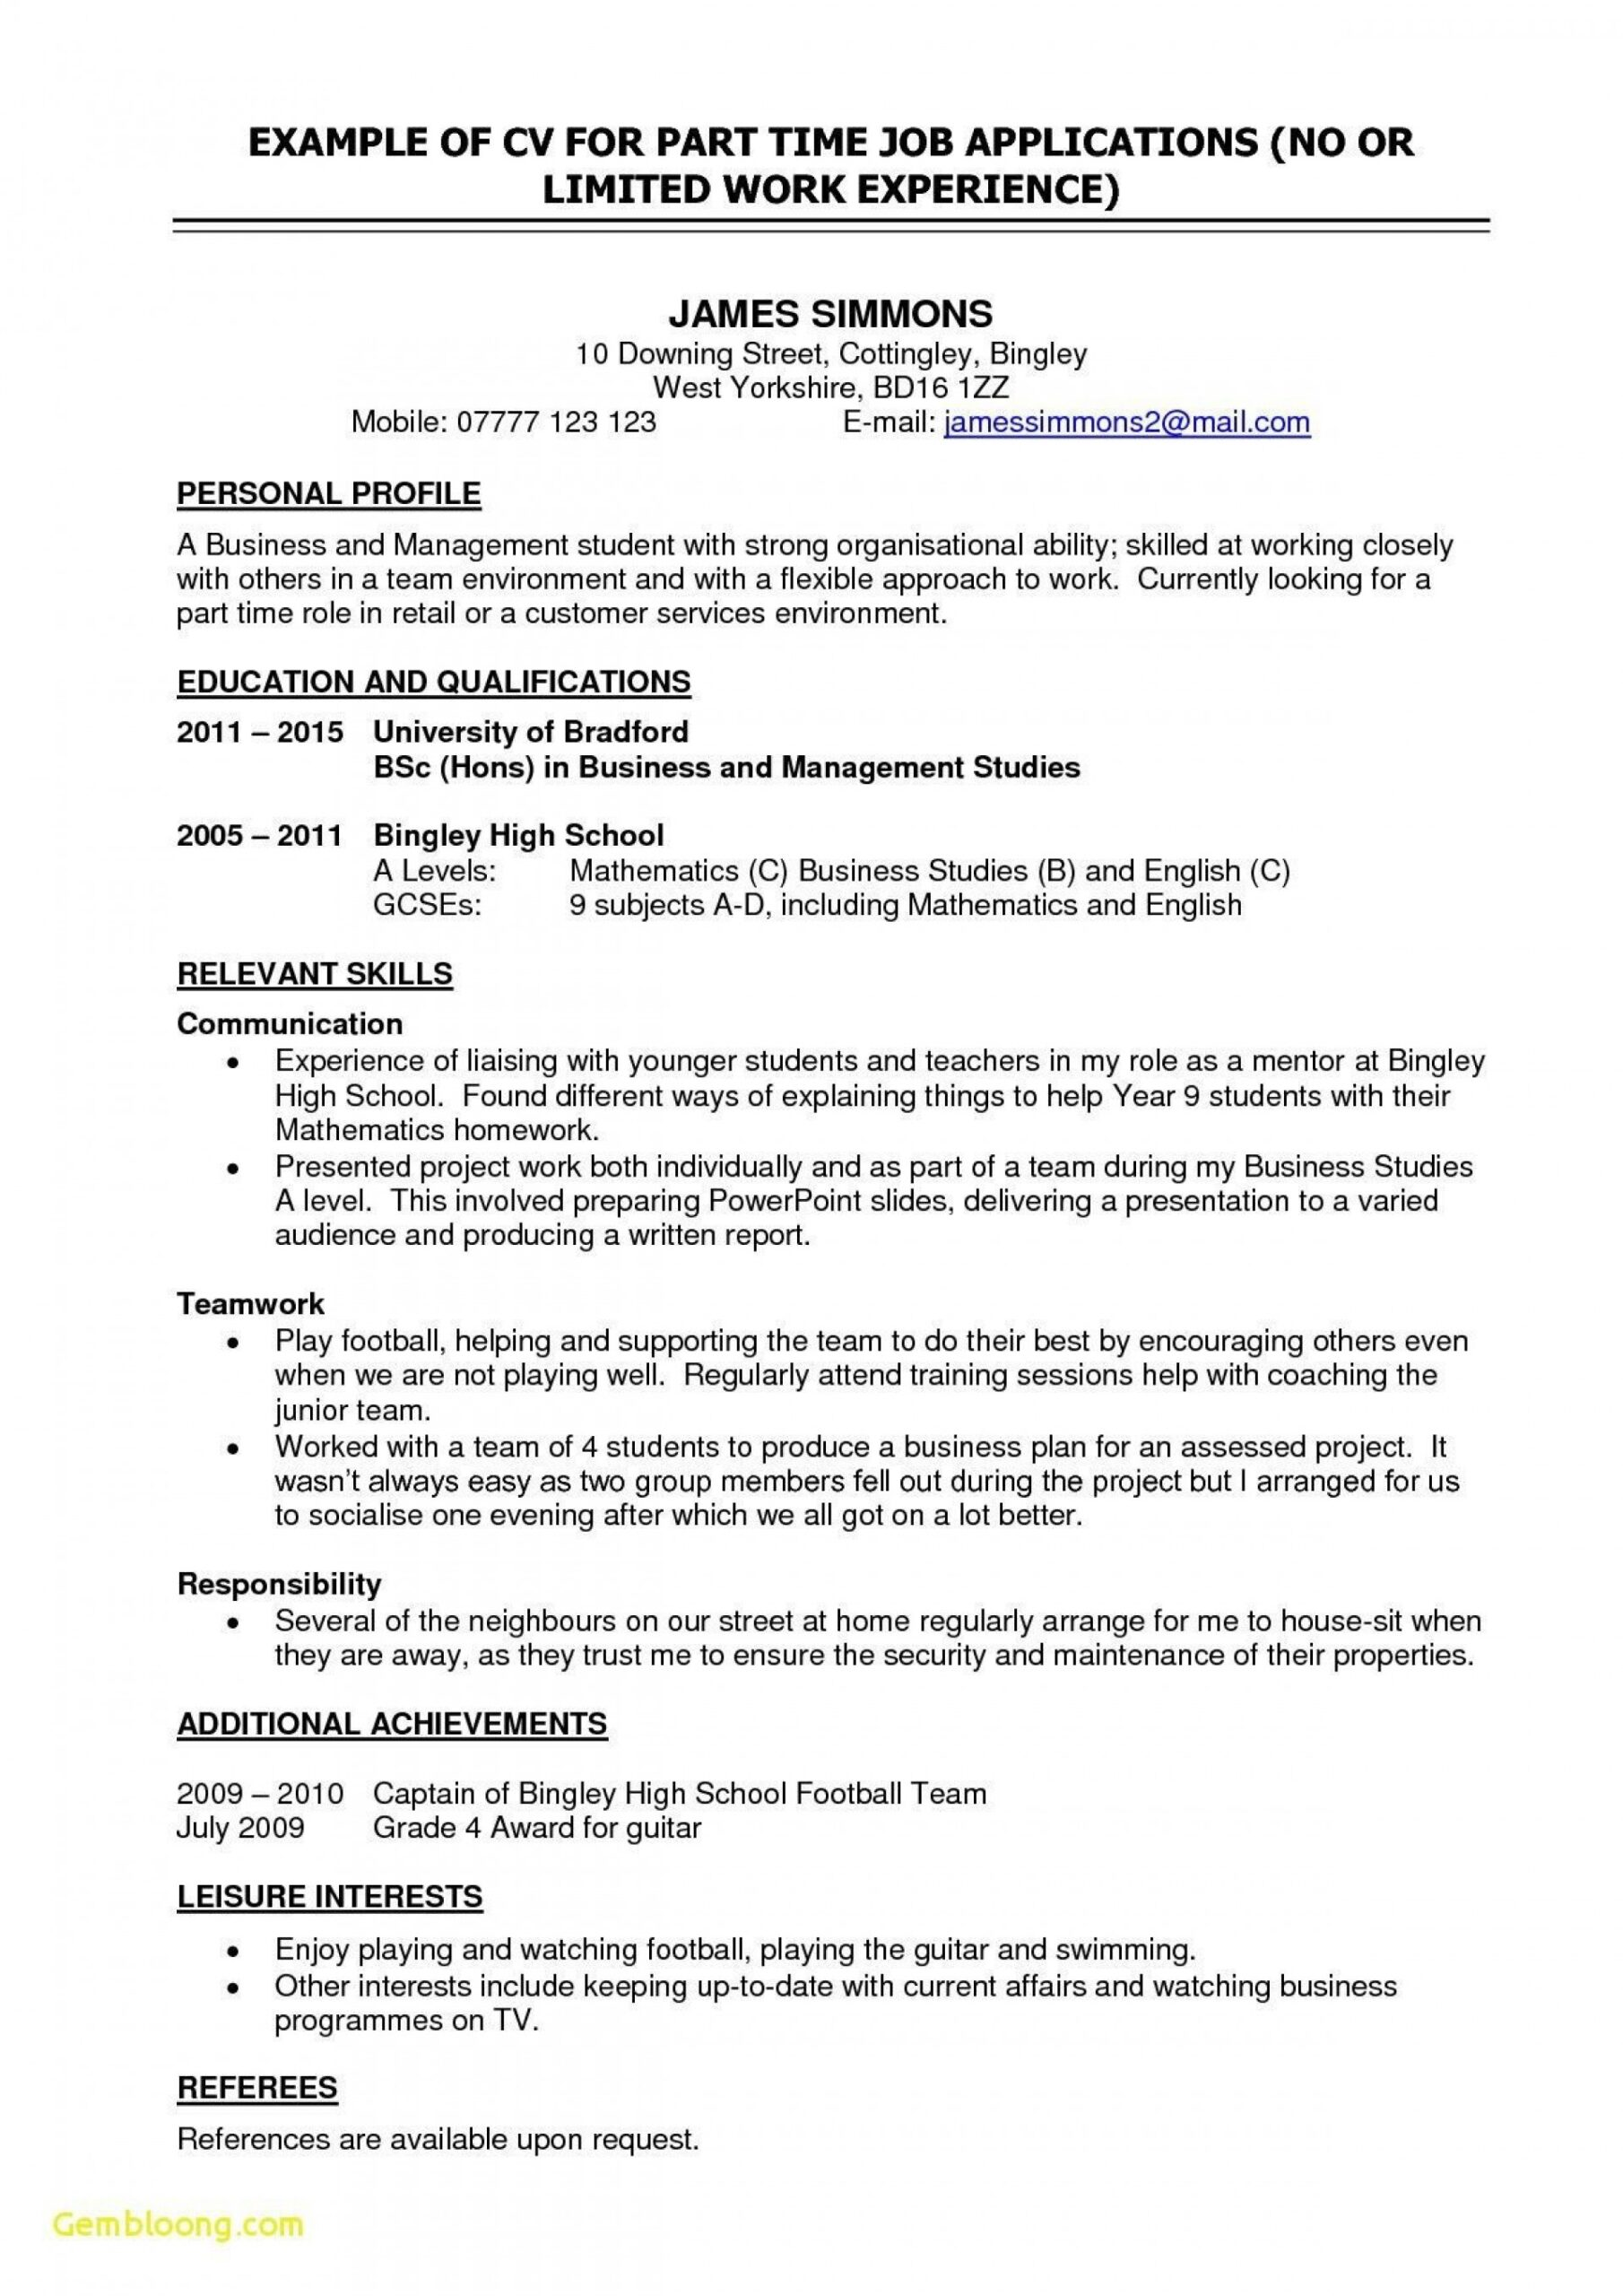 part time job resume template addictionary for college student awful photo free sample Resume Resume For Part Time Job College Student